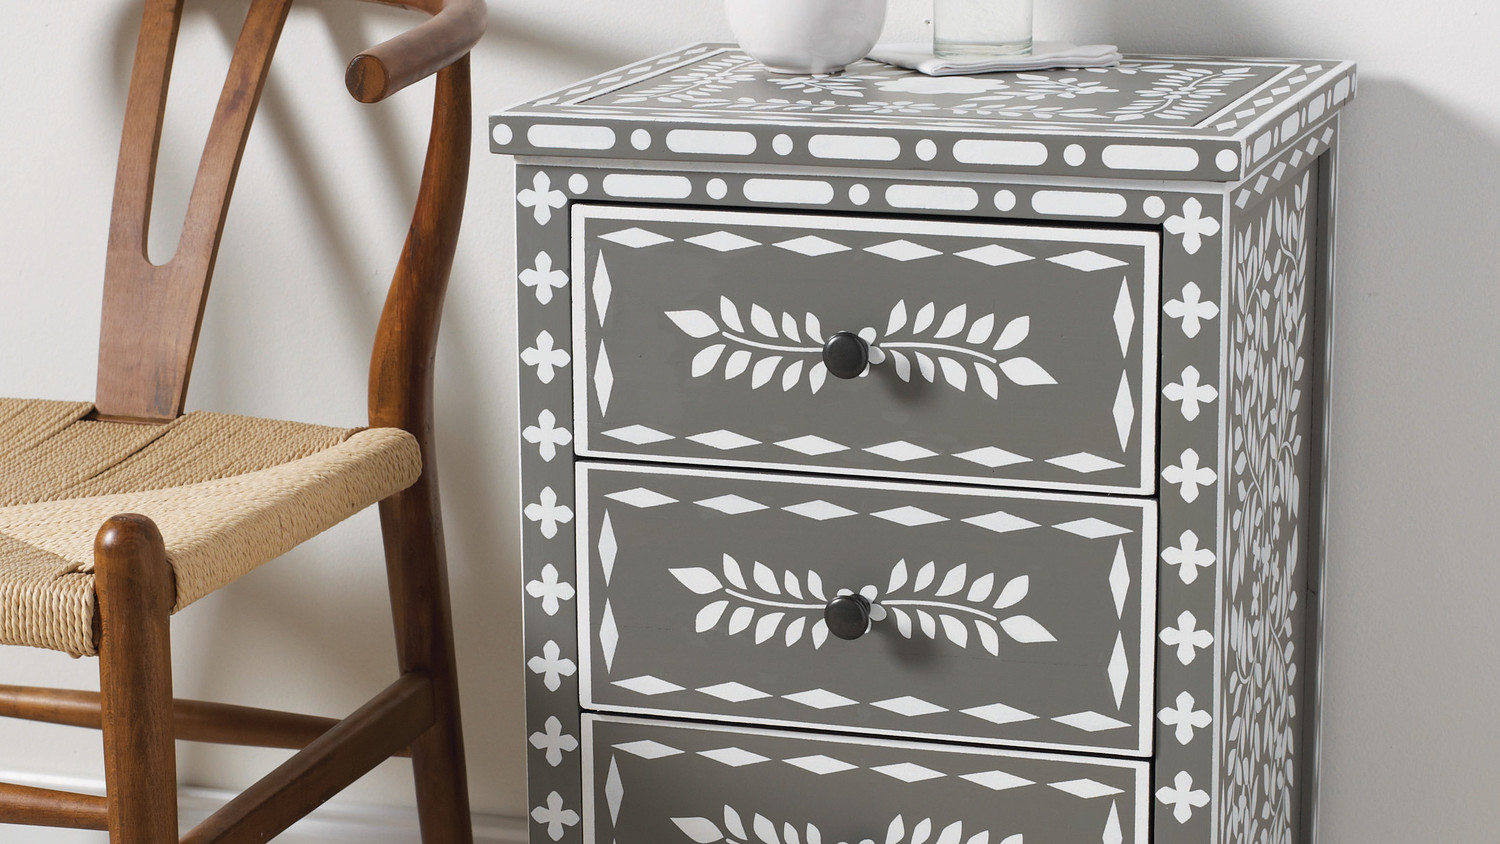 spring ping special mainstays drawer nightstand end table content stencl inlay horiz black ebony ash moroccan stenciled farmhouse wood dining diy pallet ideas antique wrought iron